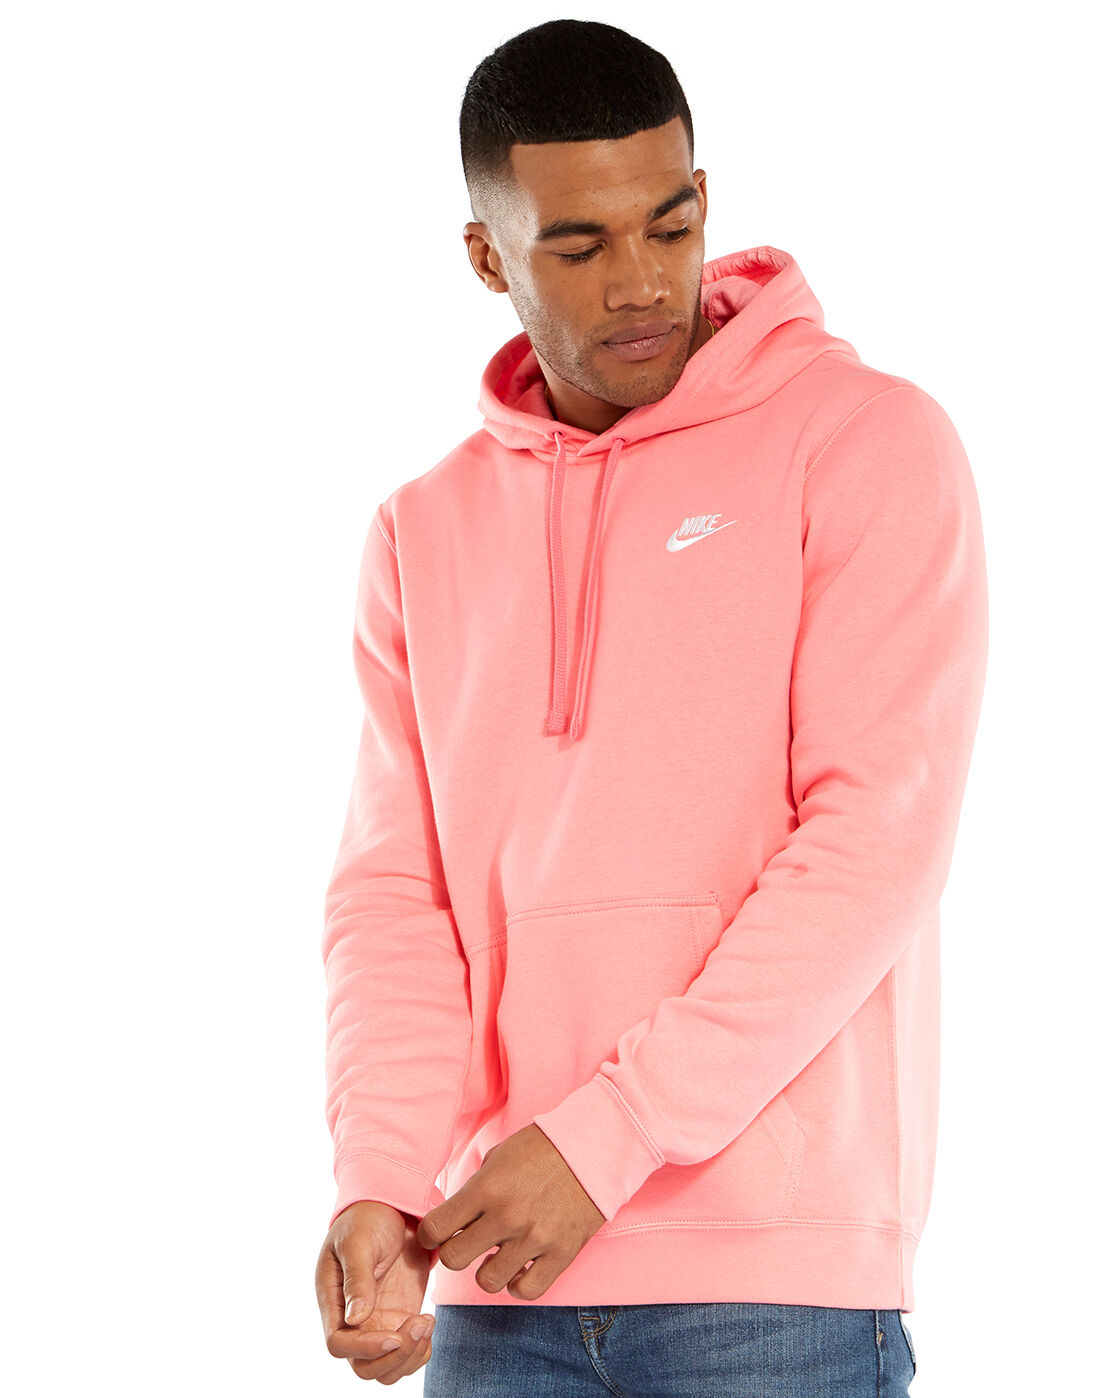 Men's Pink Nike Pullover Hoodie | Life Style Sports